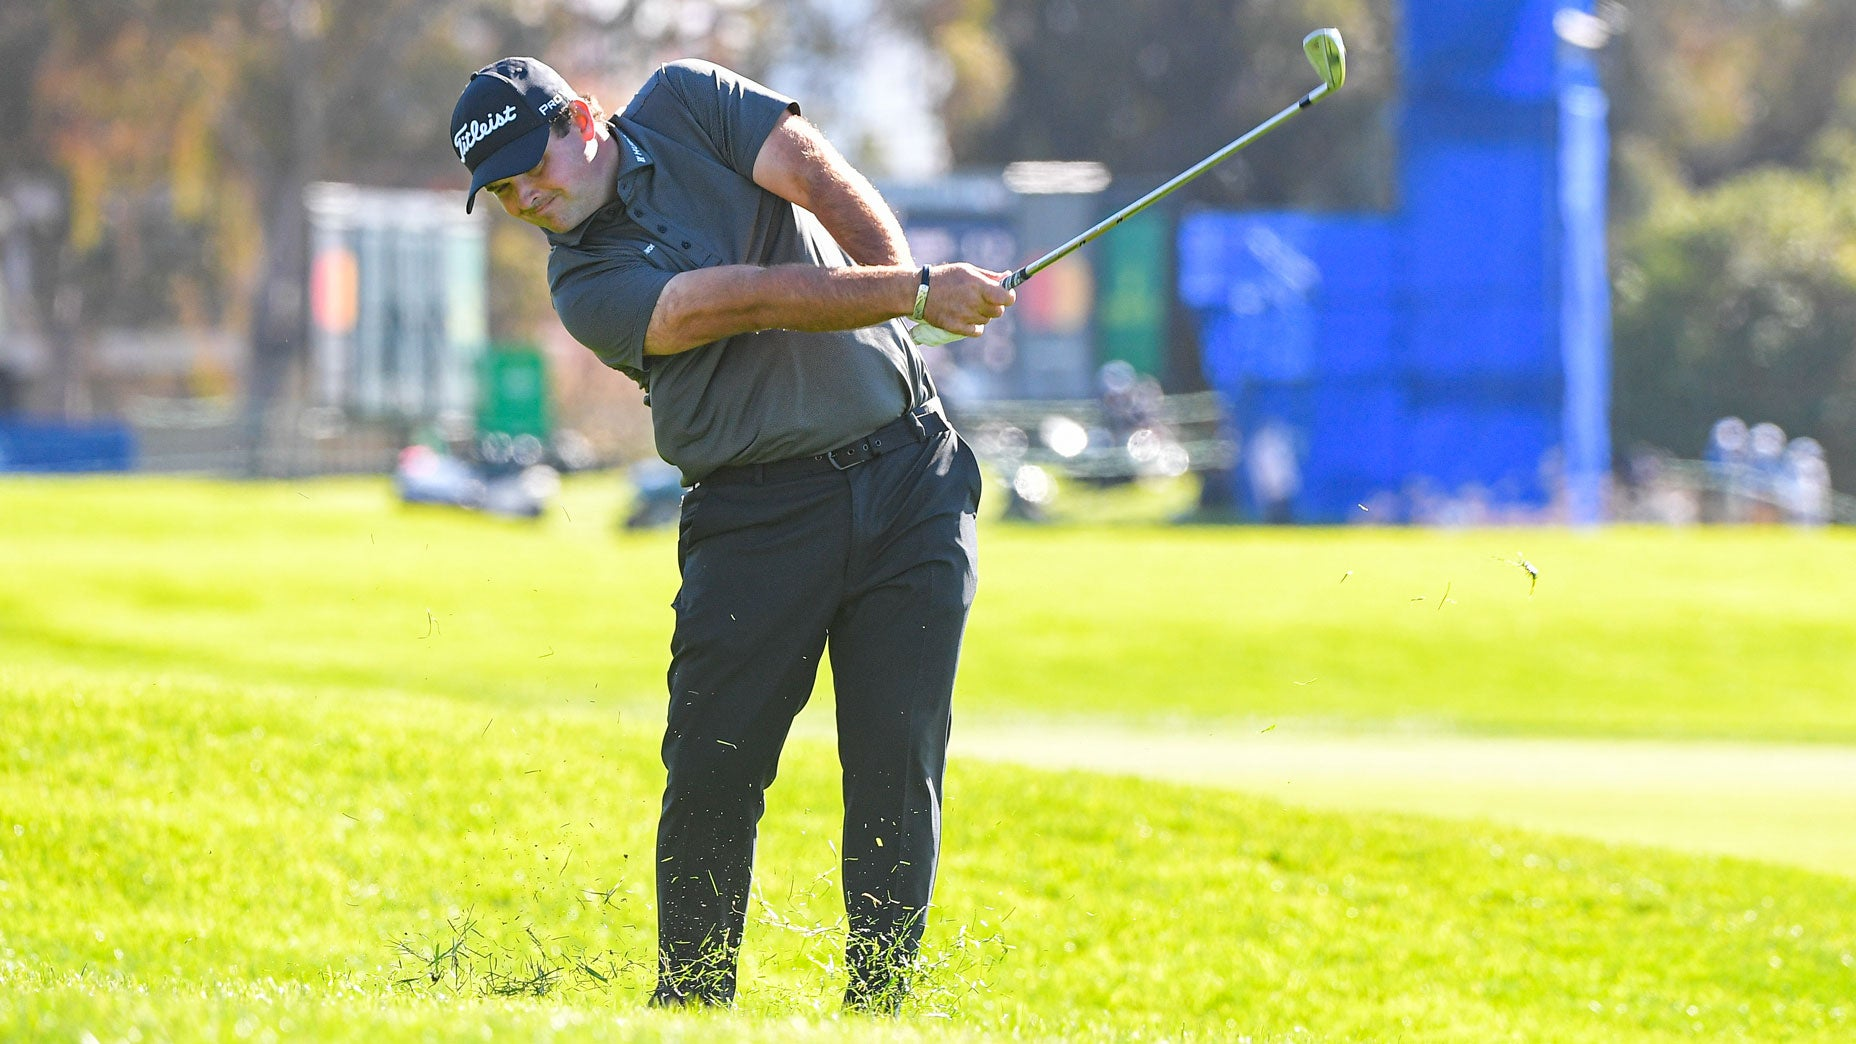 'We did it absolutely perfectly': Patrick Reed explains drama and cites Rory